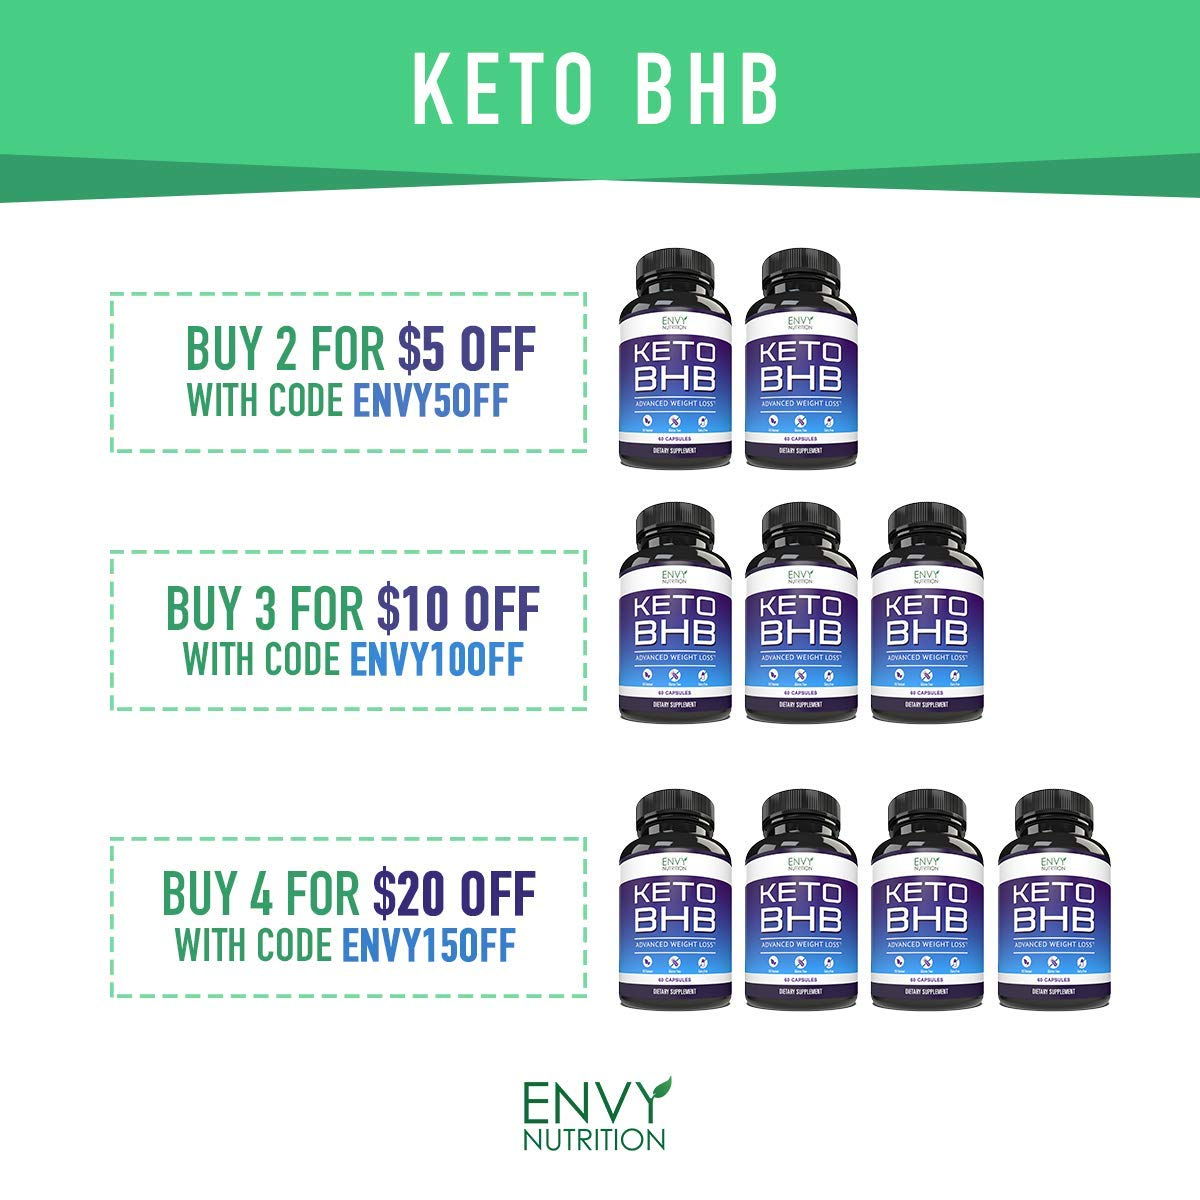 Best Keto Diet Pills – Shark Tank Advanced Weight Loss - BHB Salts Support Fat Burning, Ketosis, Improved Energy and Enhanced Focus by Envy Nutrition (Image #6)